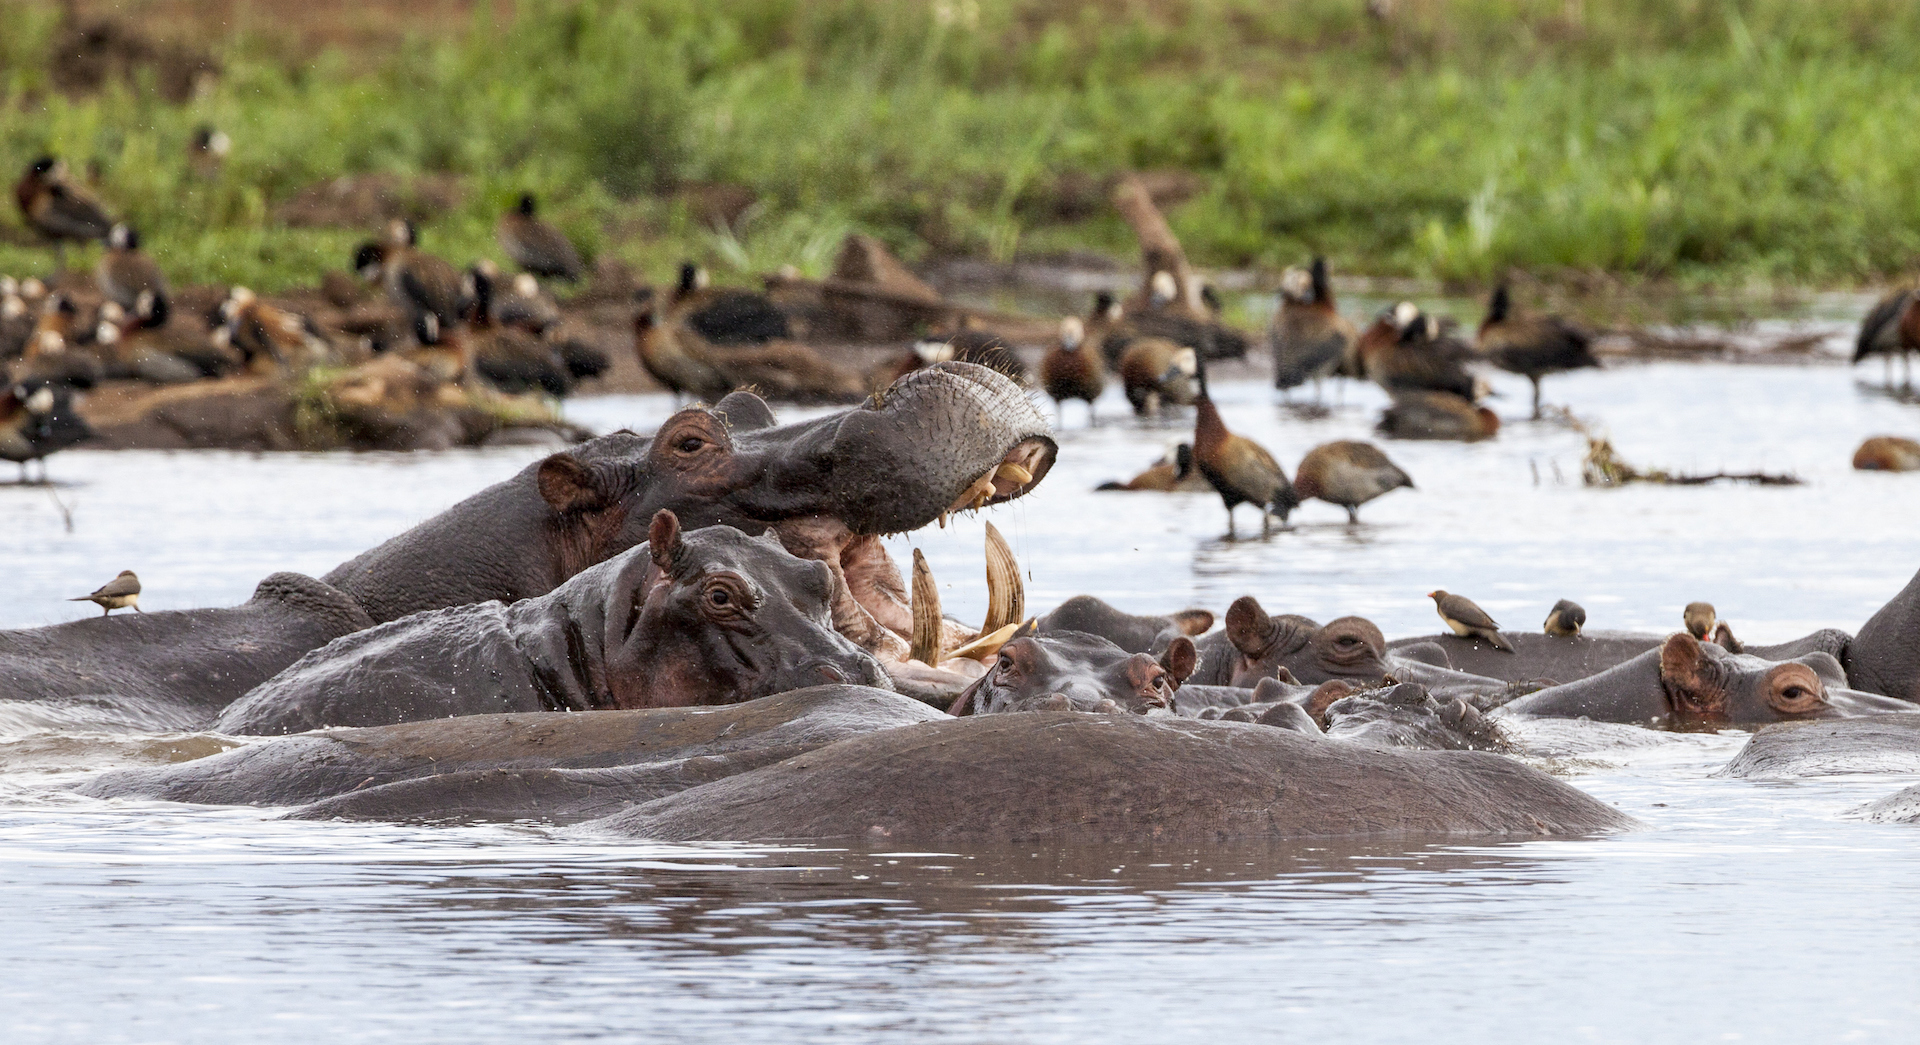 Hippos at Lake Manyara National Park, Tanzania